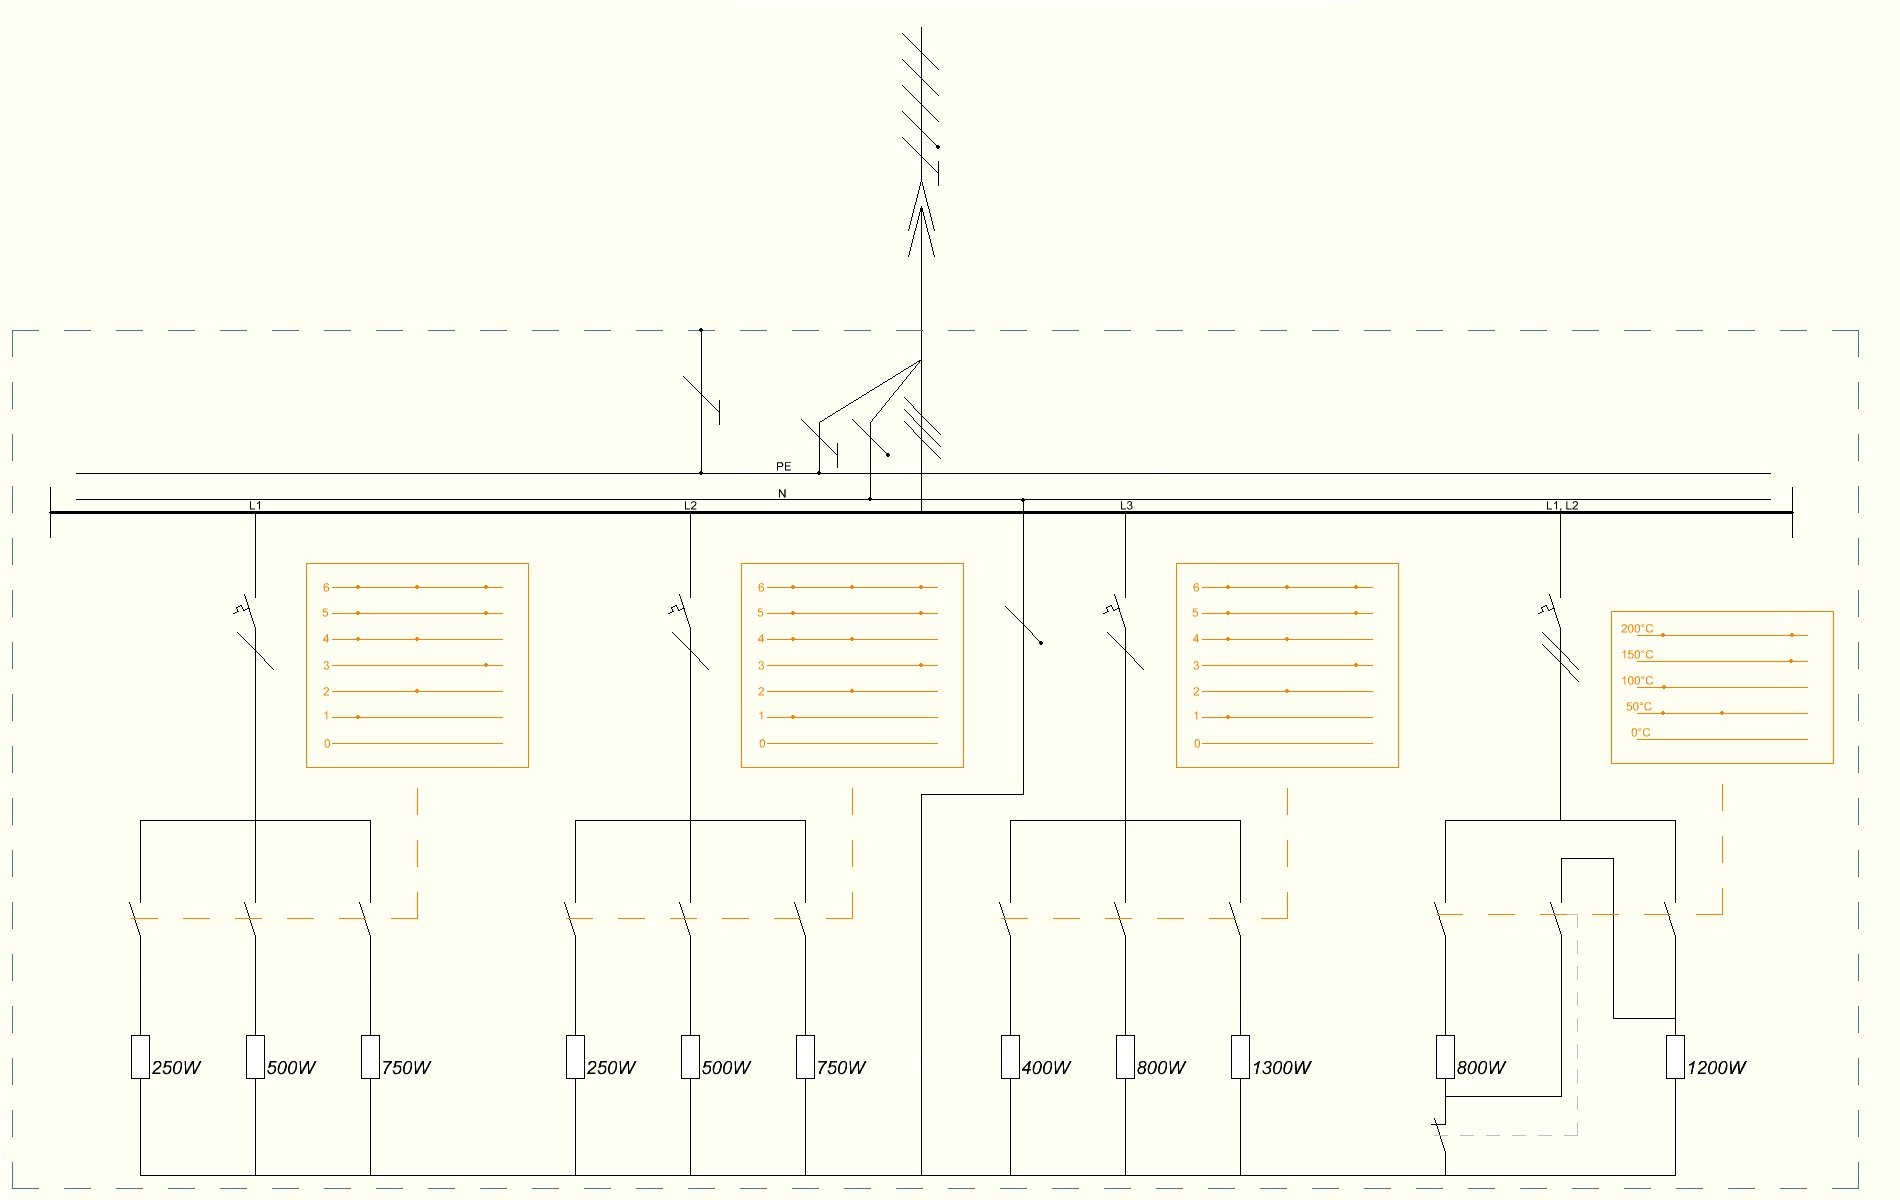 schematic electrical the wiring diagram file schematic wiring diagram of electrical stove schematic